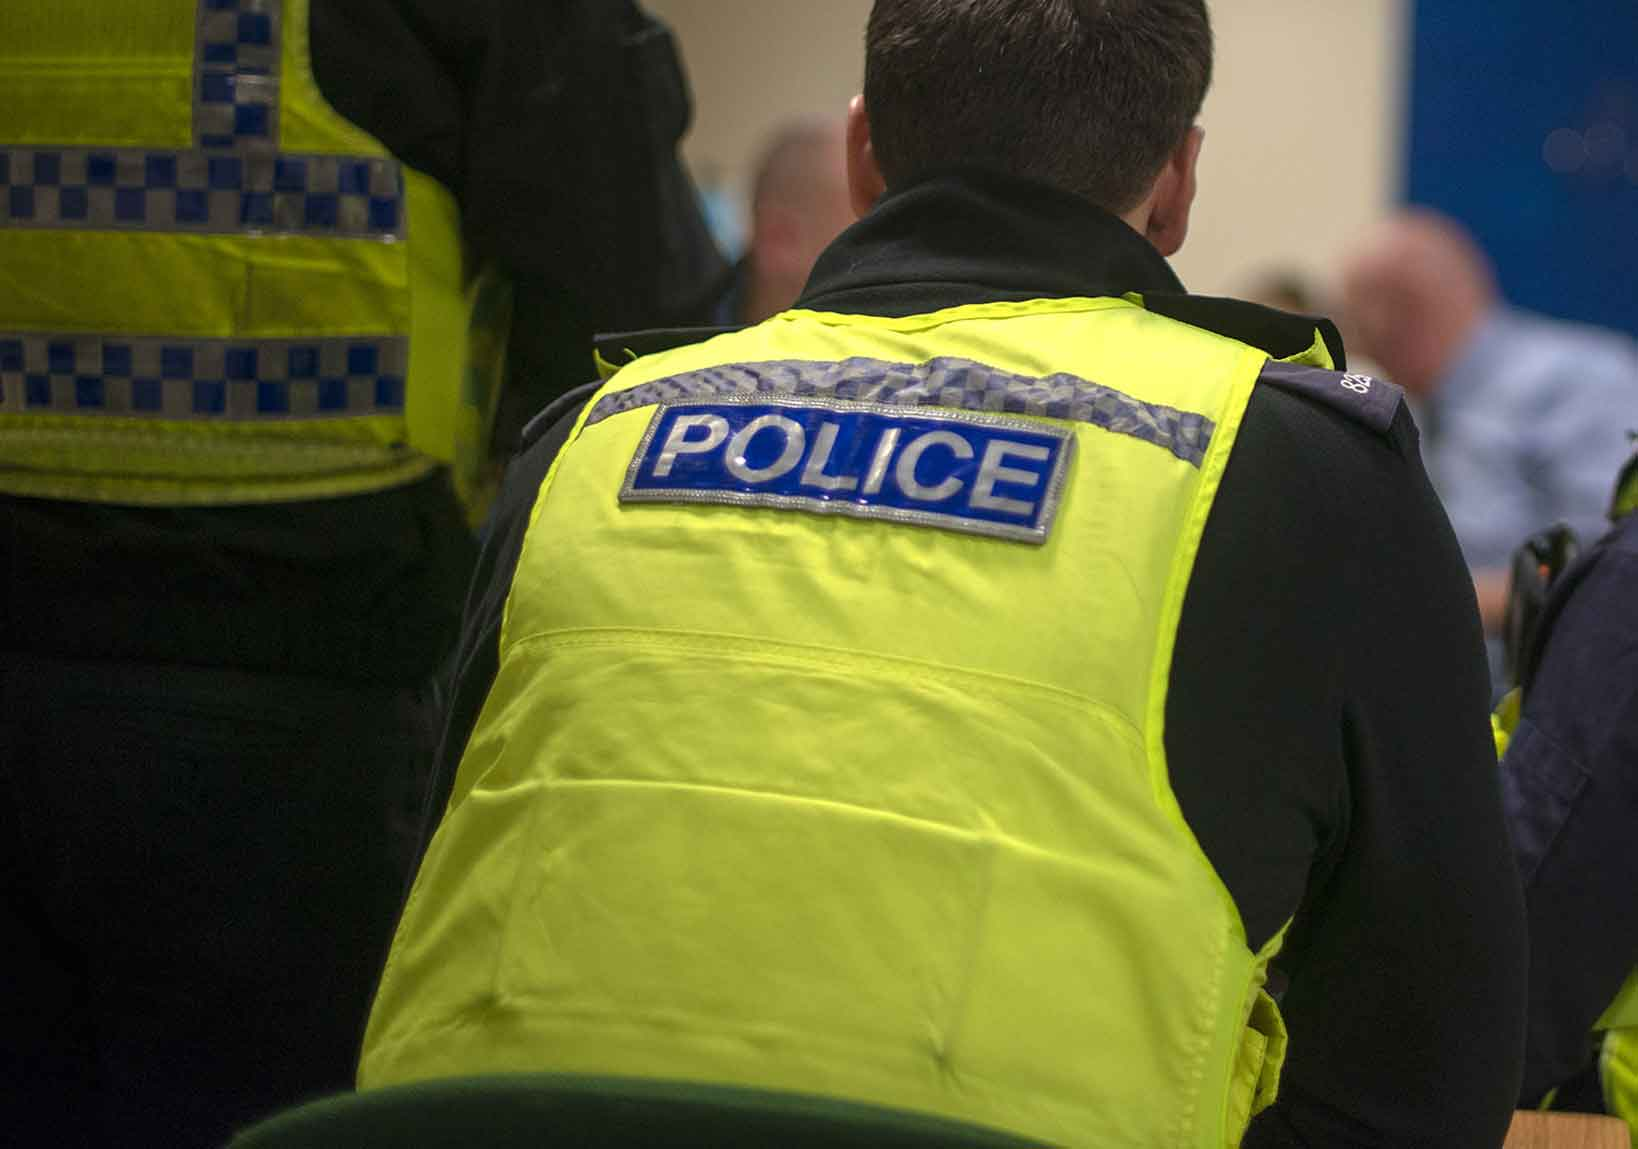 Police consistency is key to tackling crime